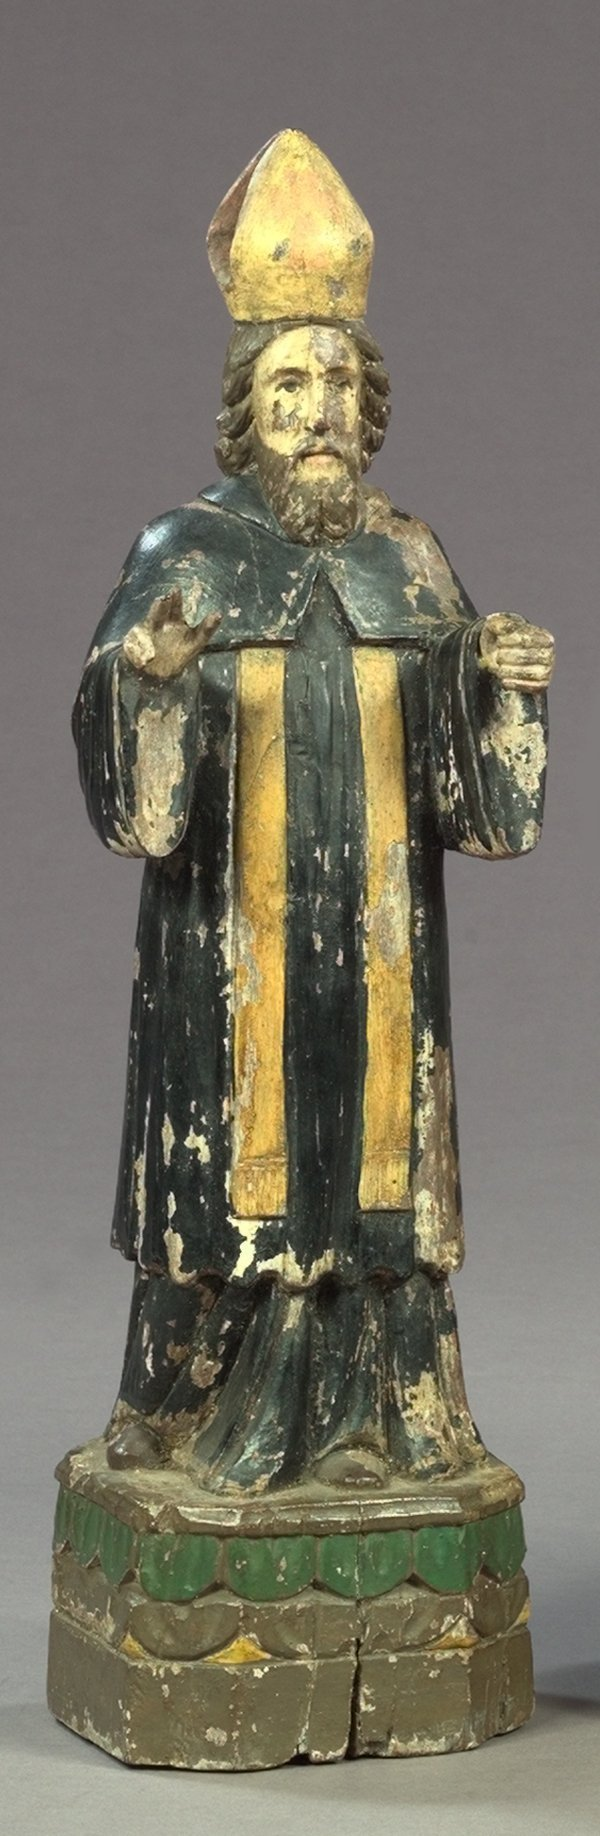 813: Spanish Colonial Carved Wood Figure